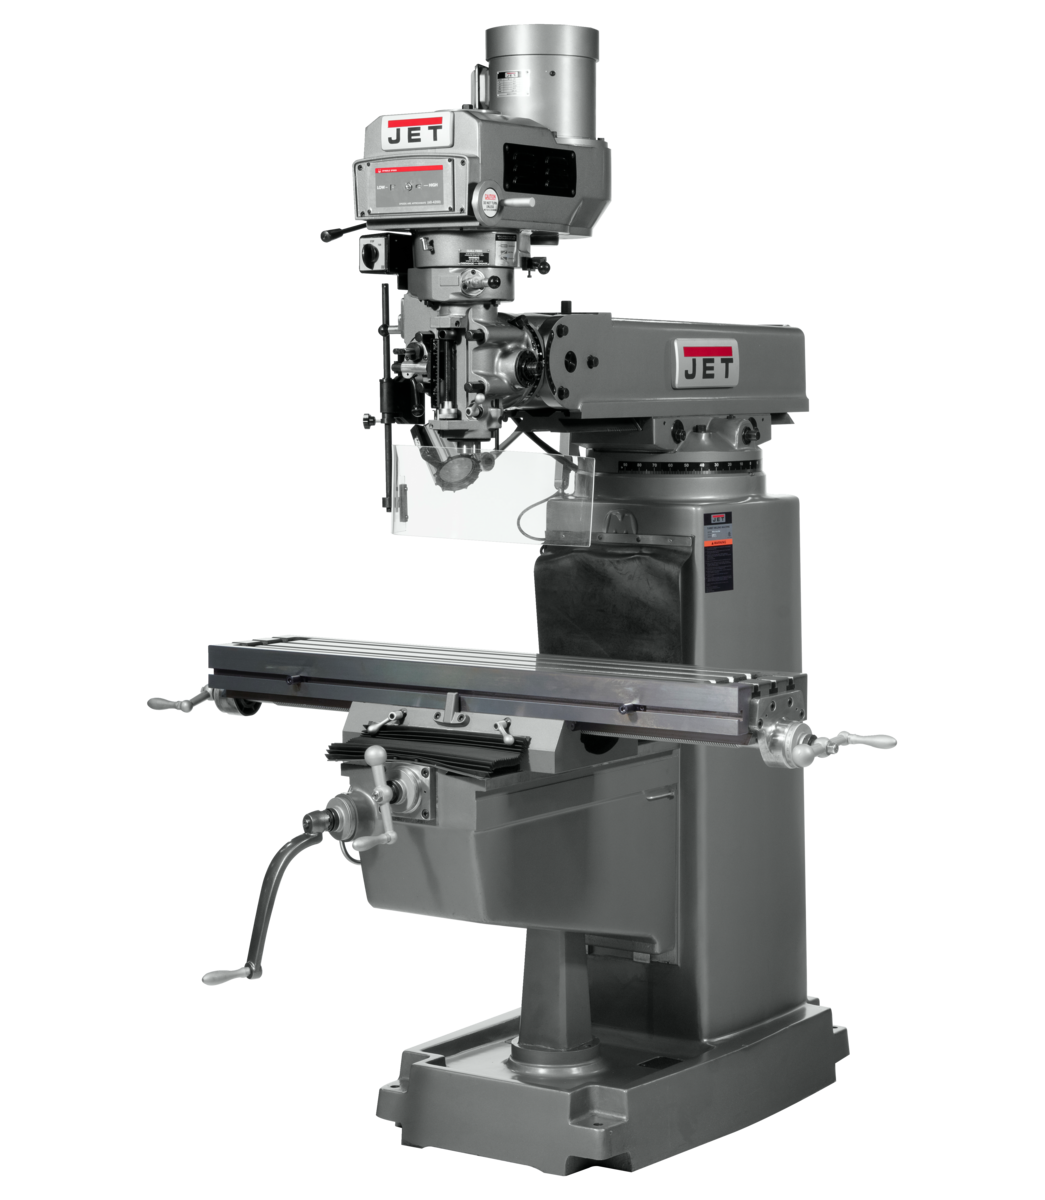 JTM-1050VS2 Mill With ACU-RITE 203 DRO With X and Y-Axis Powerfeeds